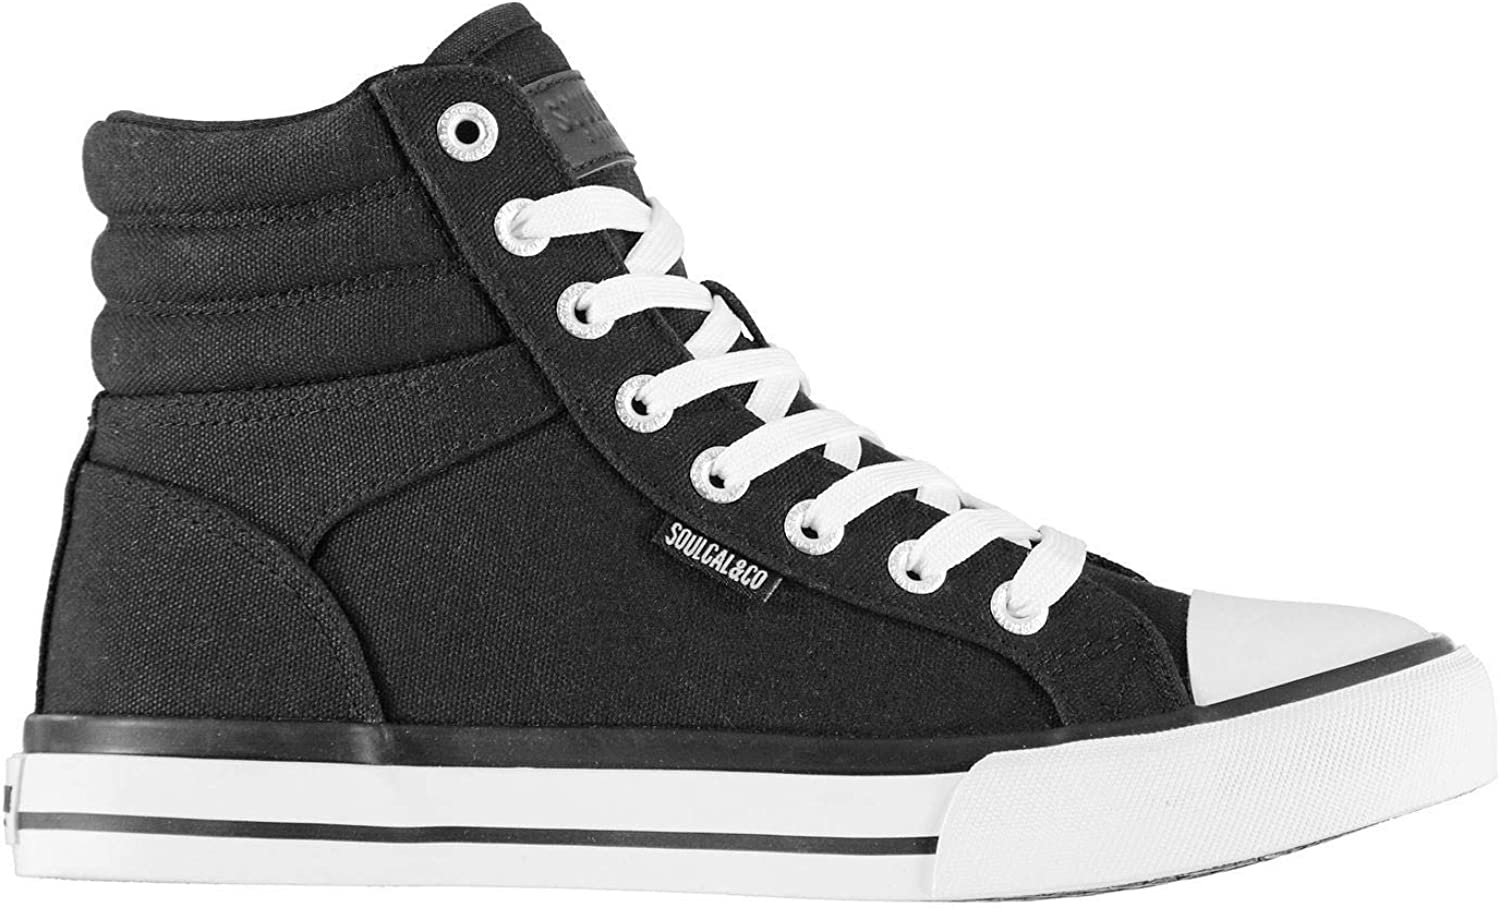 SoulCal Asti Hi Canvas shoes Womens Black Athleisure Trainers Sneakers Footwear